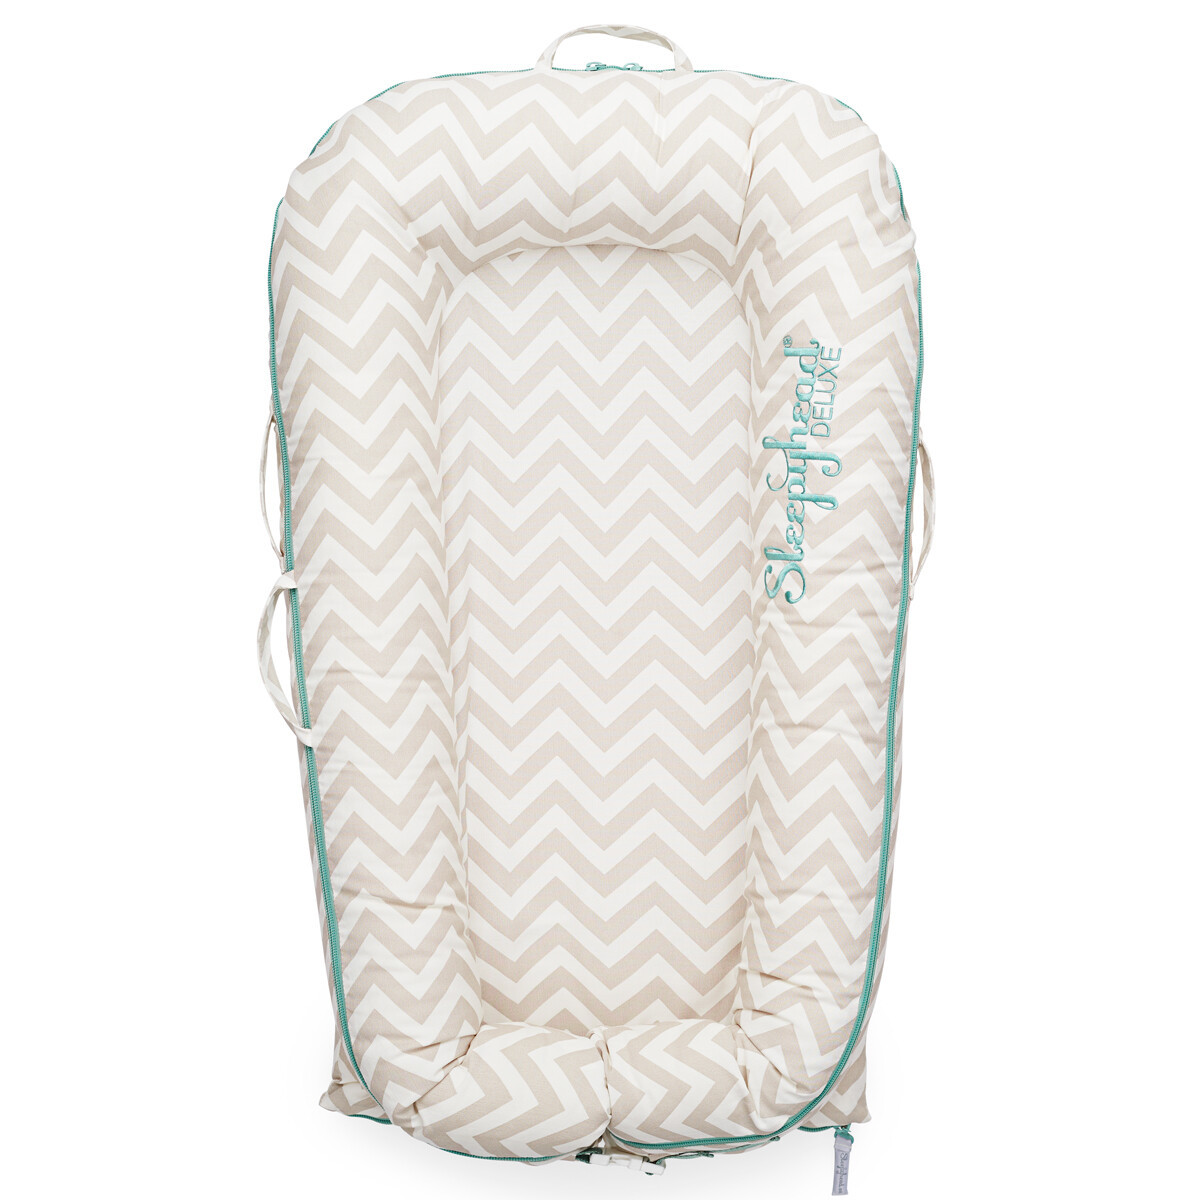 Babynest Deluxe+ - Silver Lining